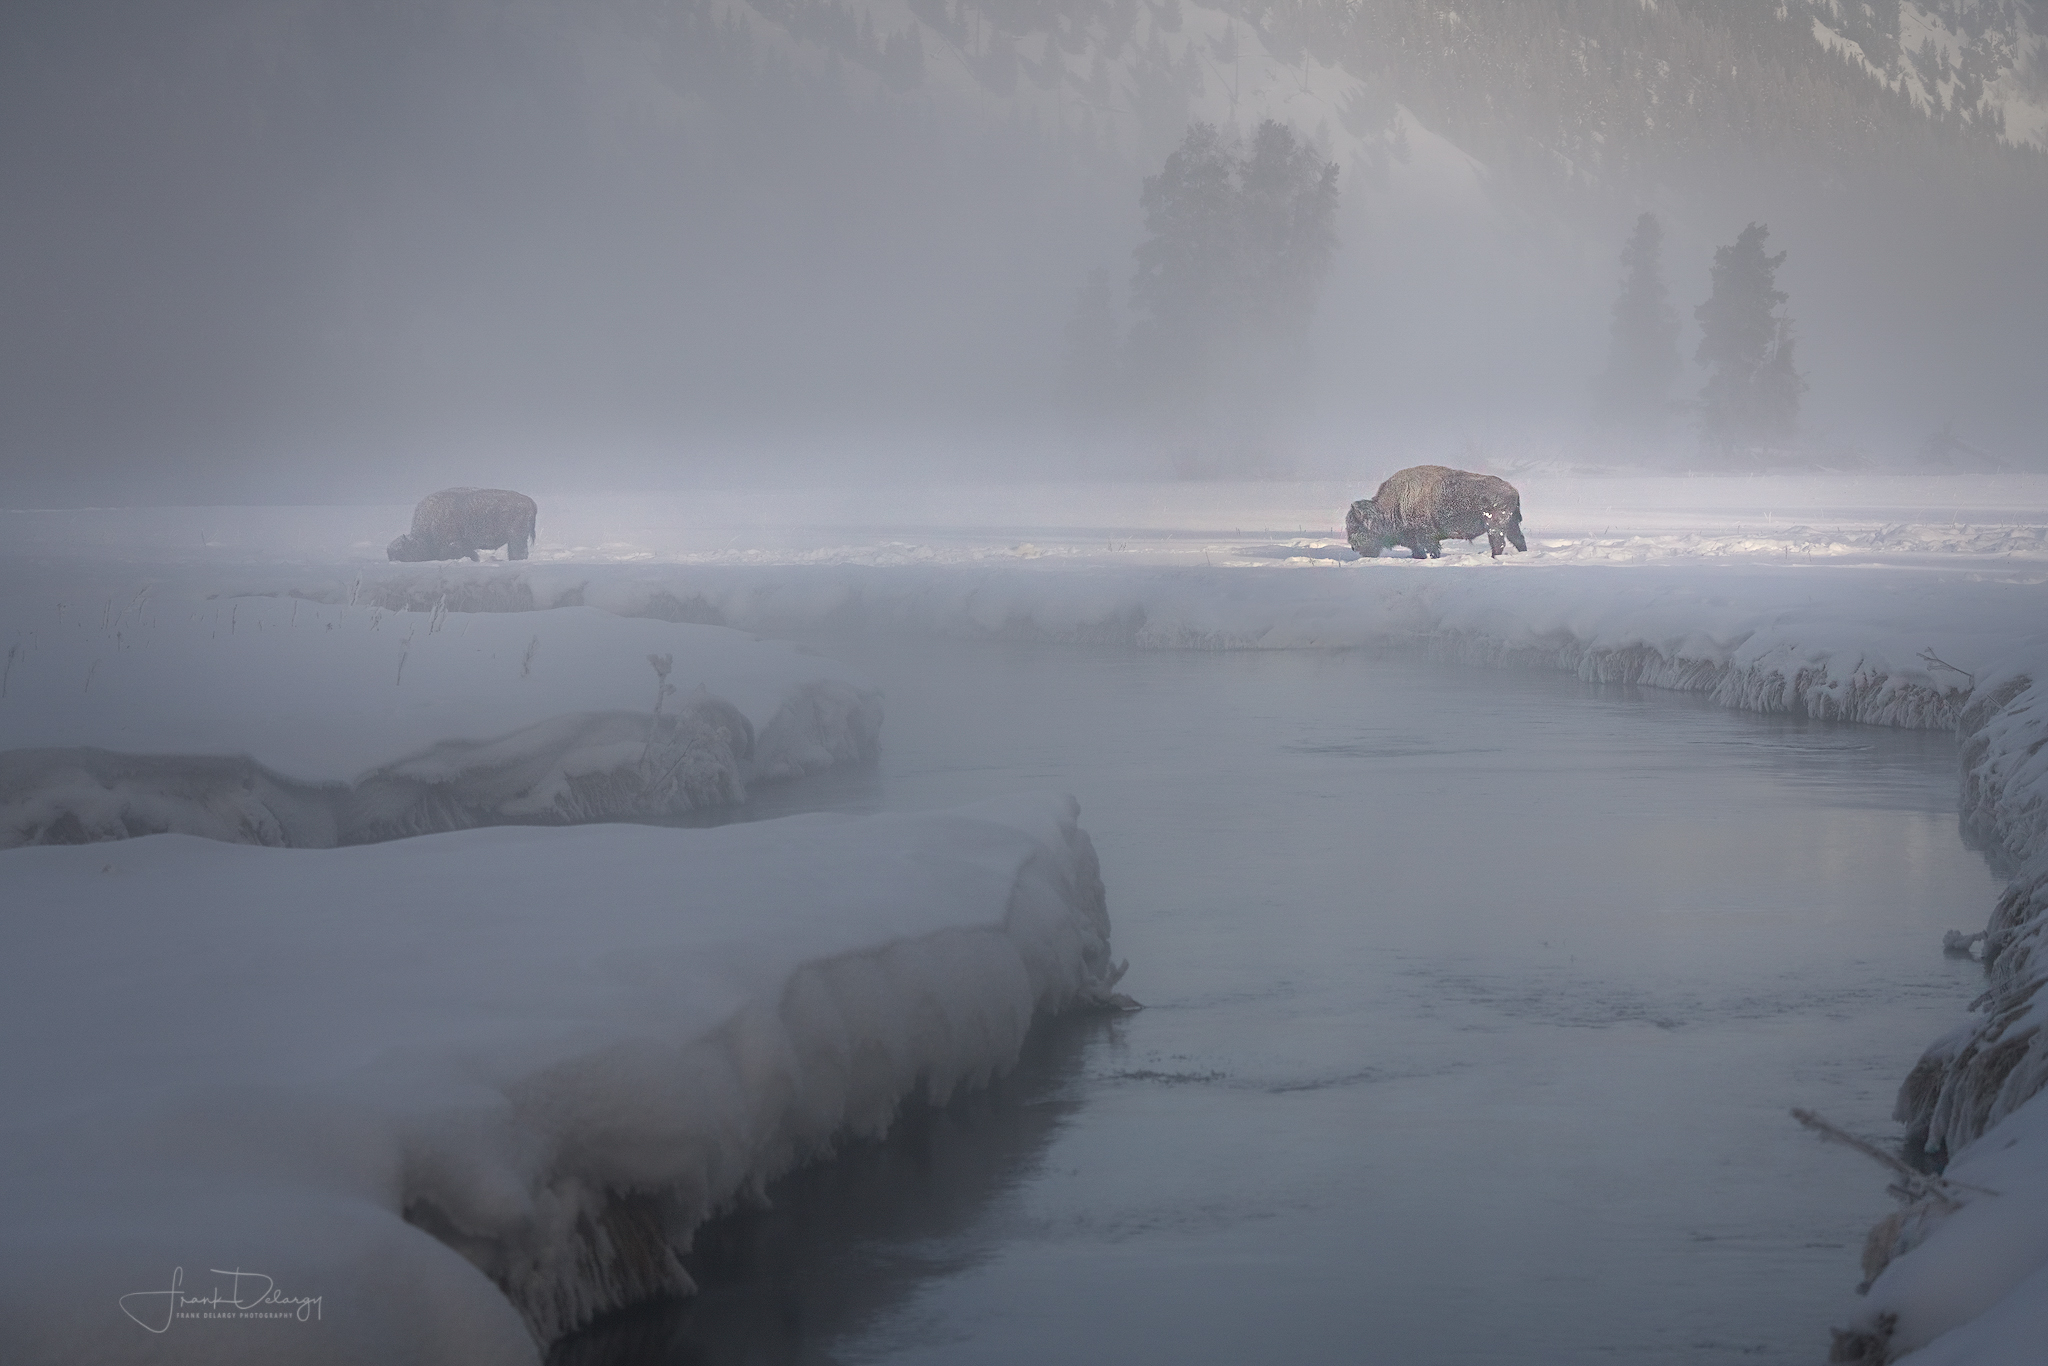 Bison pushing snow aside to forage on the grass underneath. Great lighting!